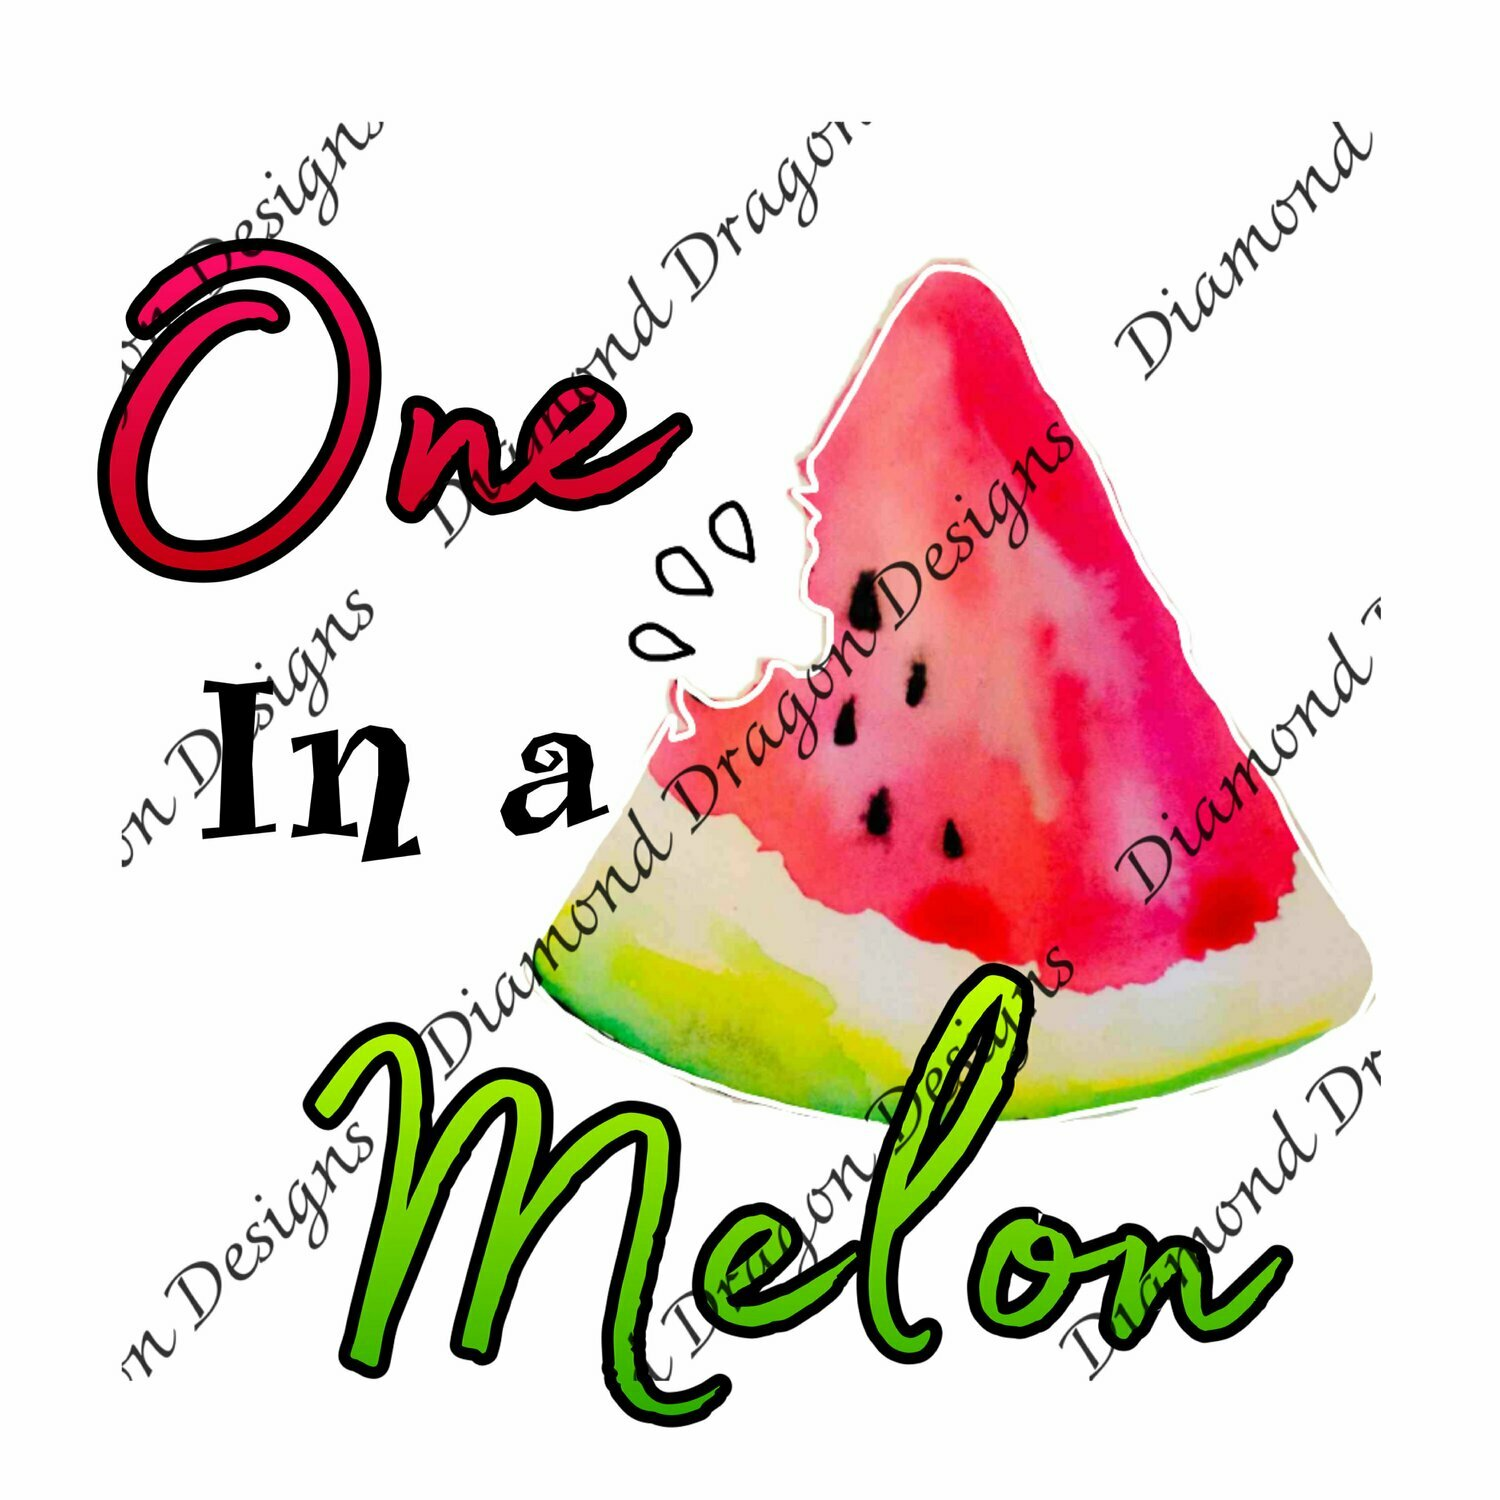 Watermelon - Summer, Summer time, One in a Melon, Quote, Watermelon Watercolor, Waterslide